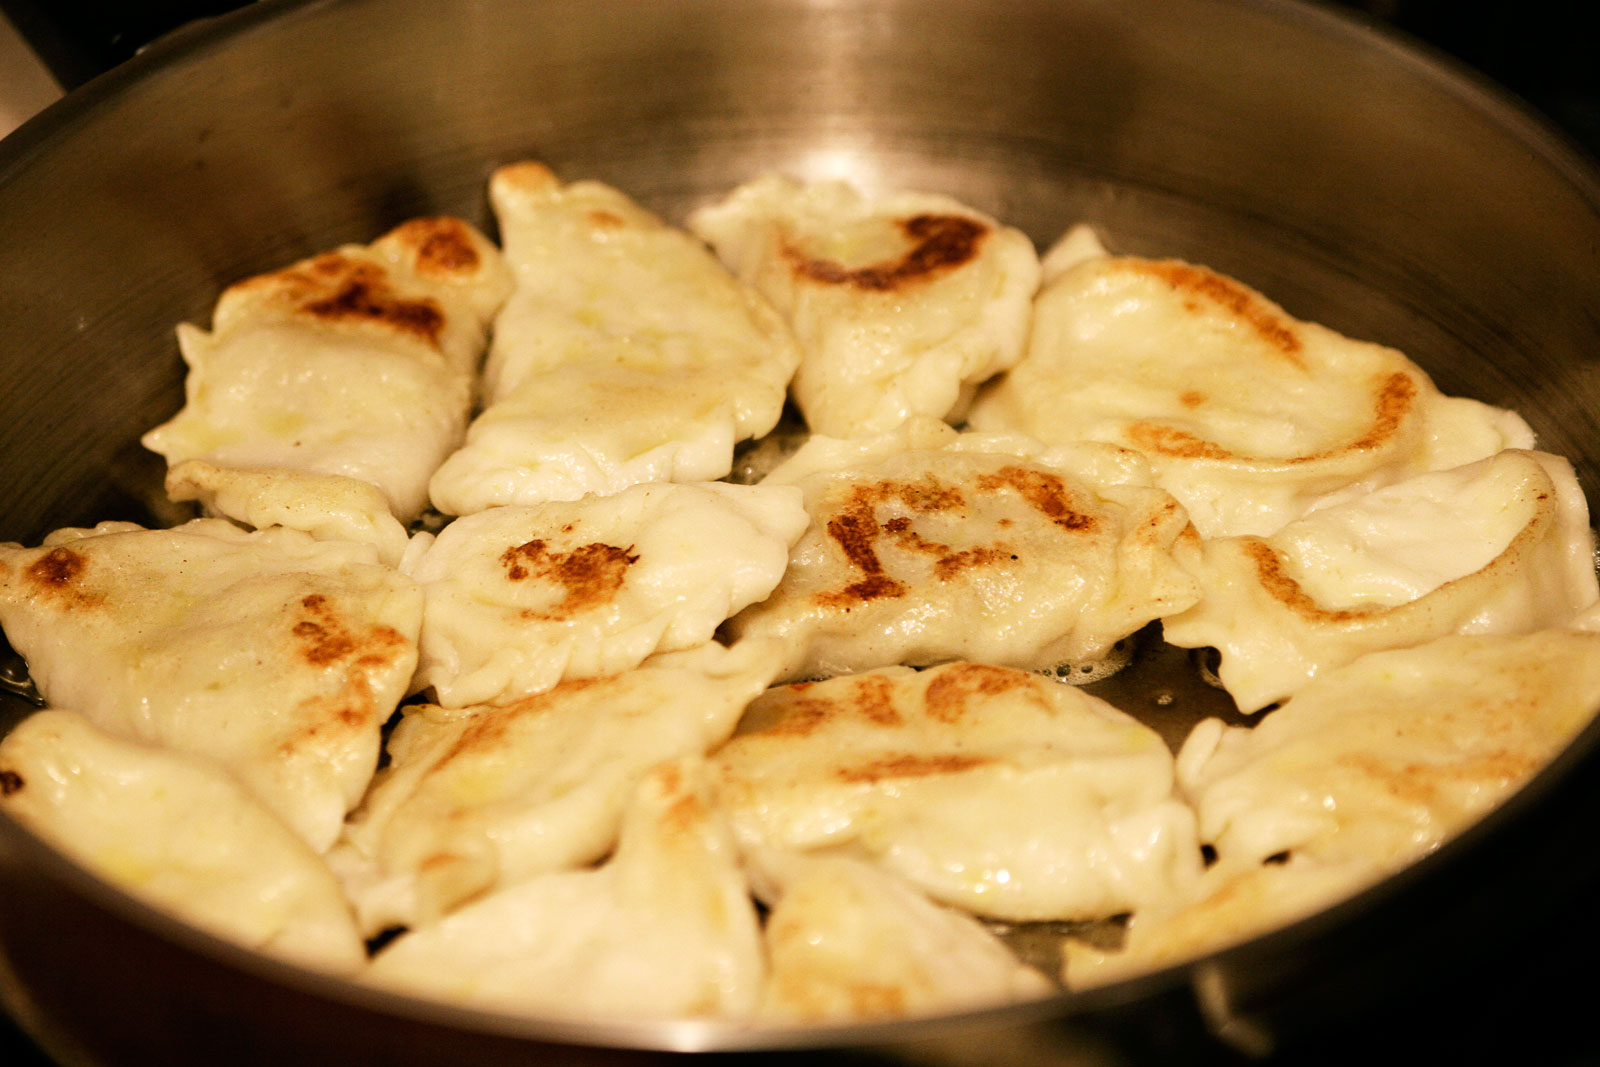 Cooked pierogies